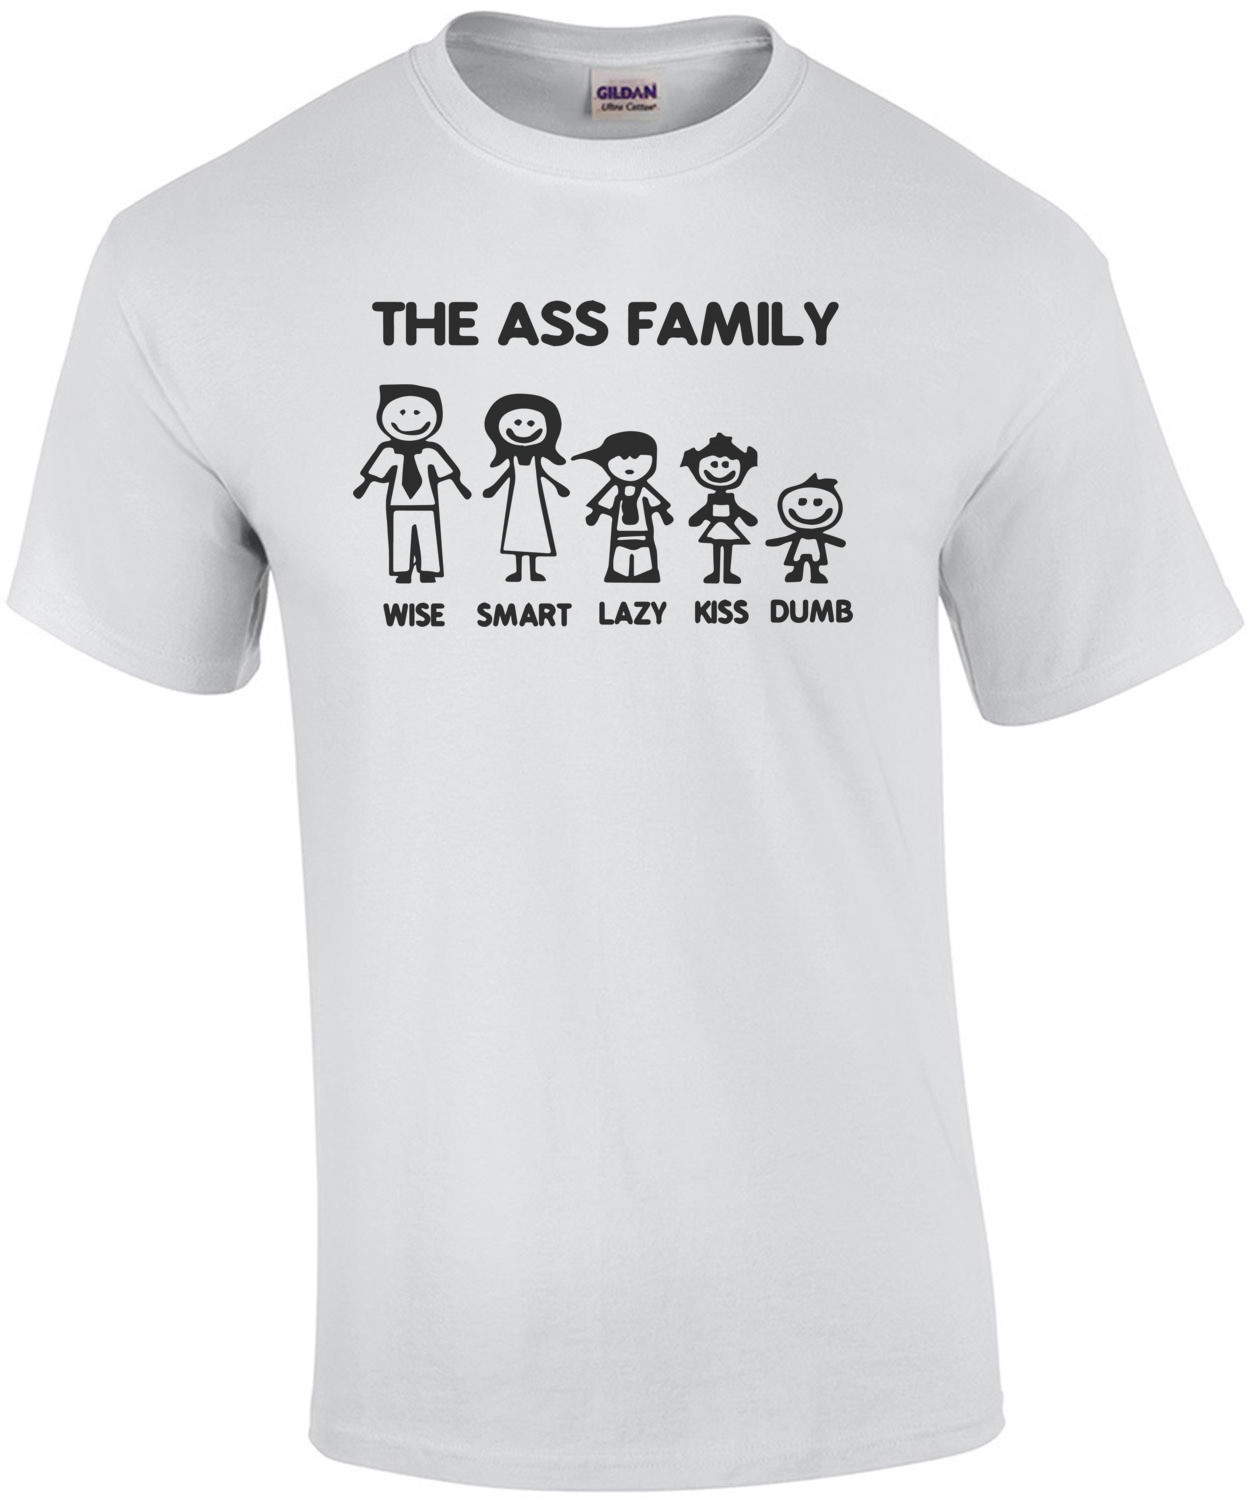 The Ass Family - Wise, Smart, Lazy, Kiss, Dumb - Funny